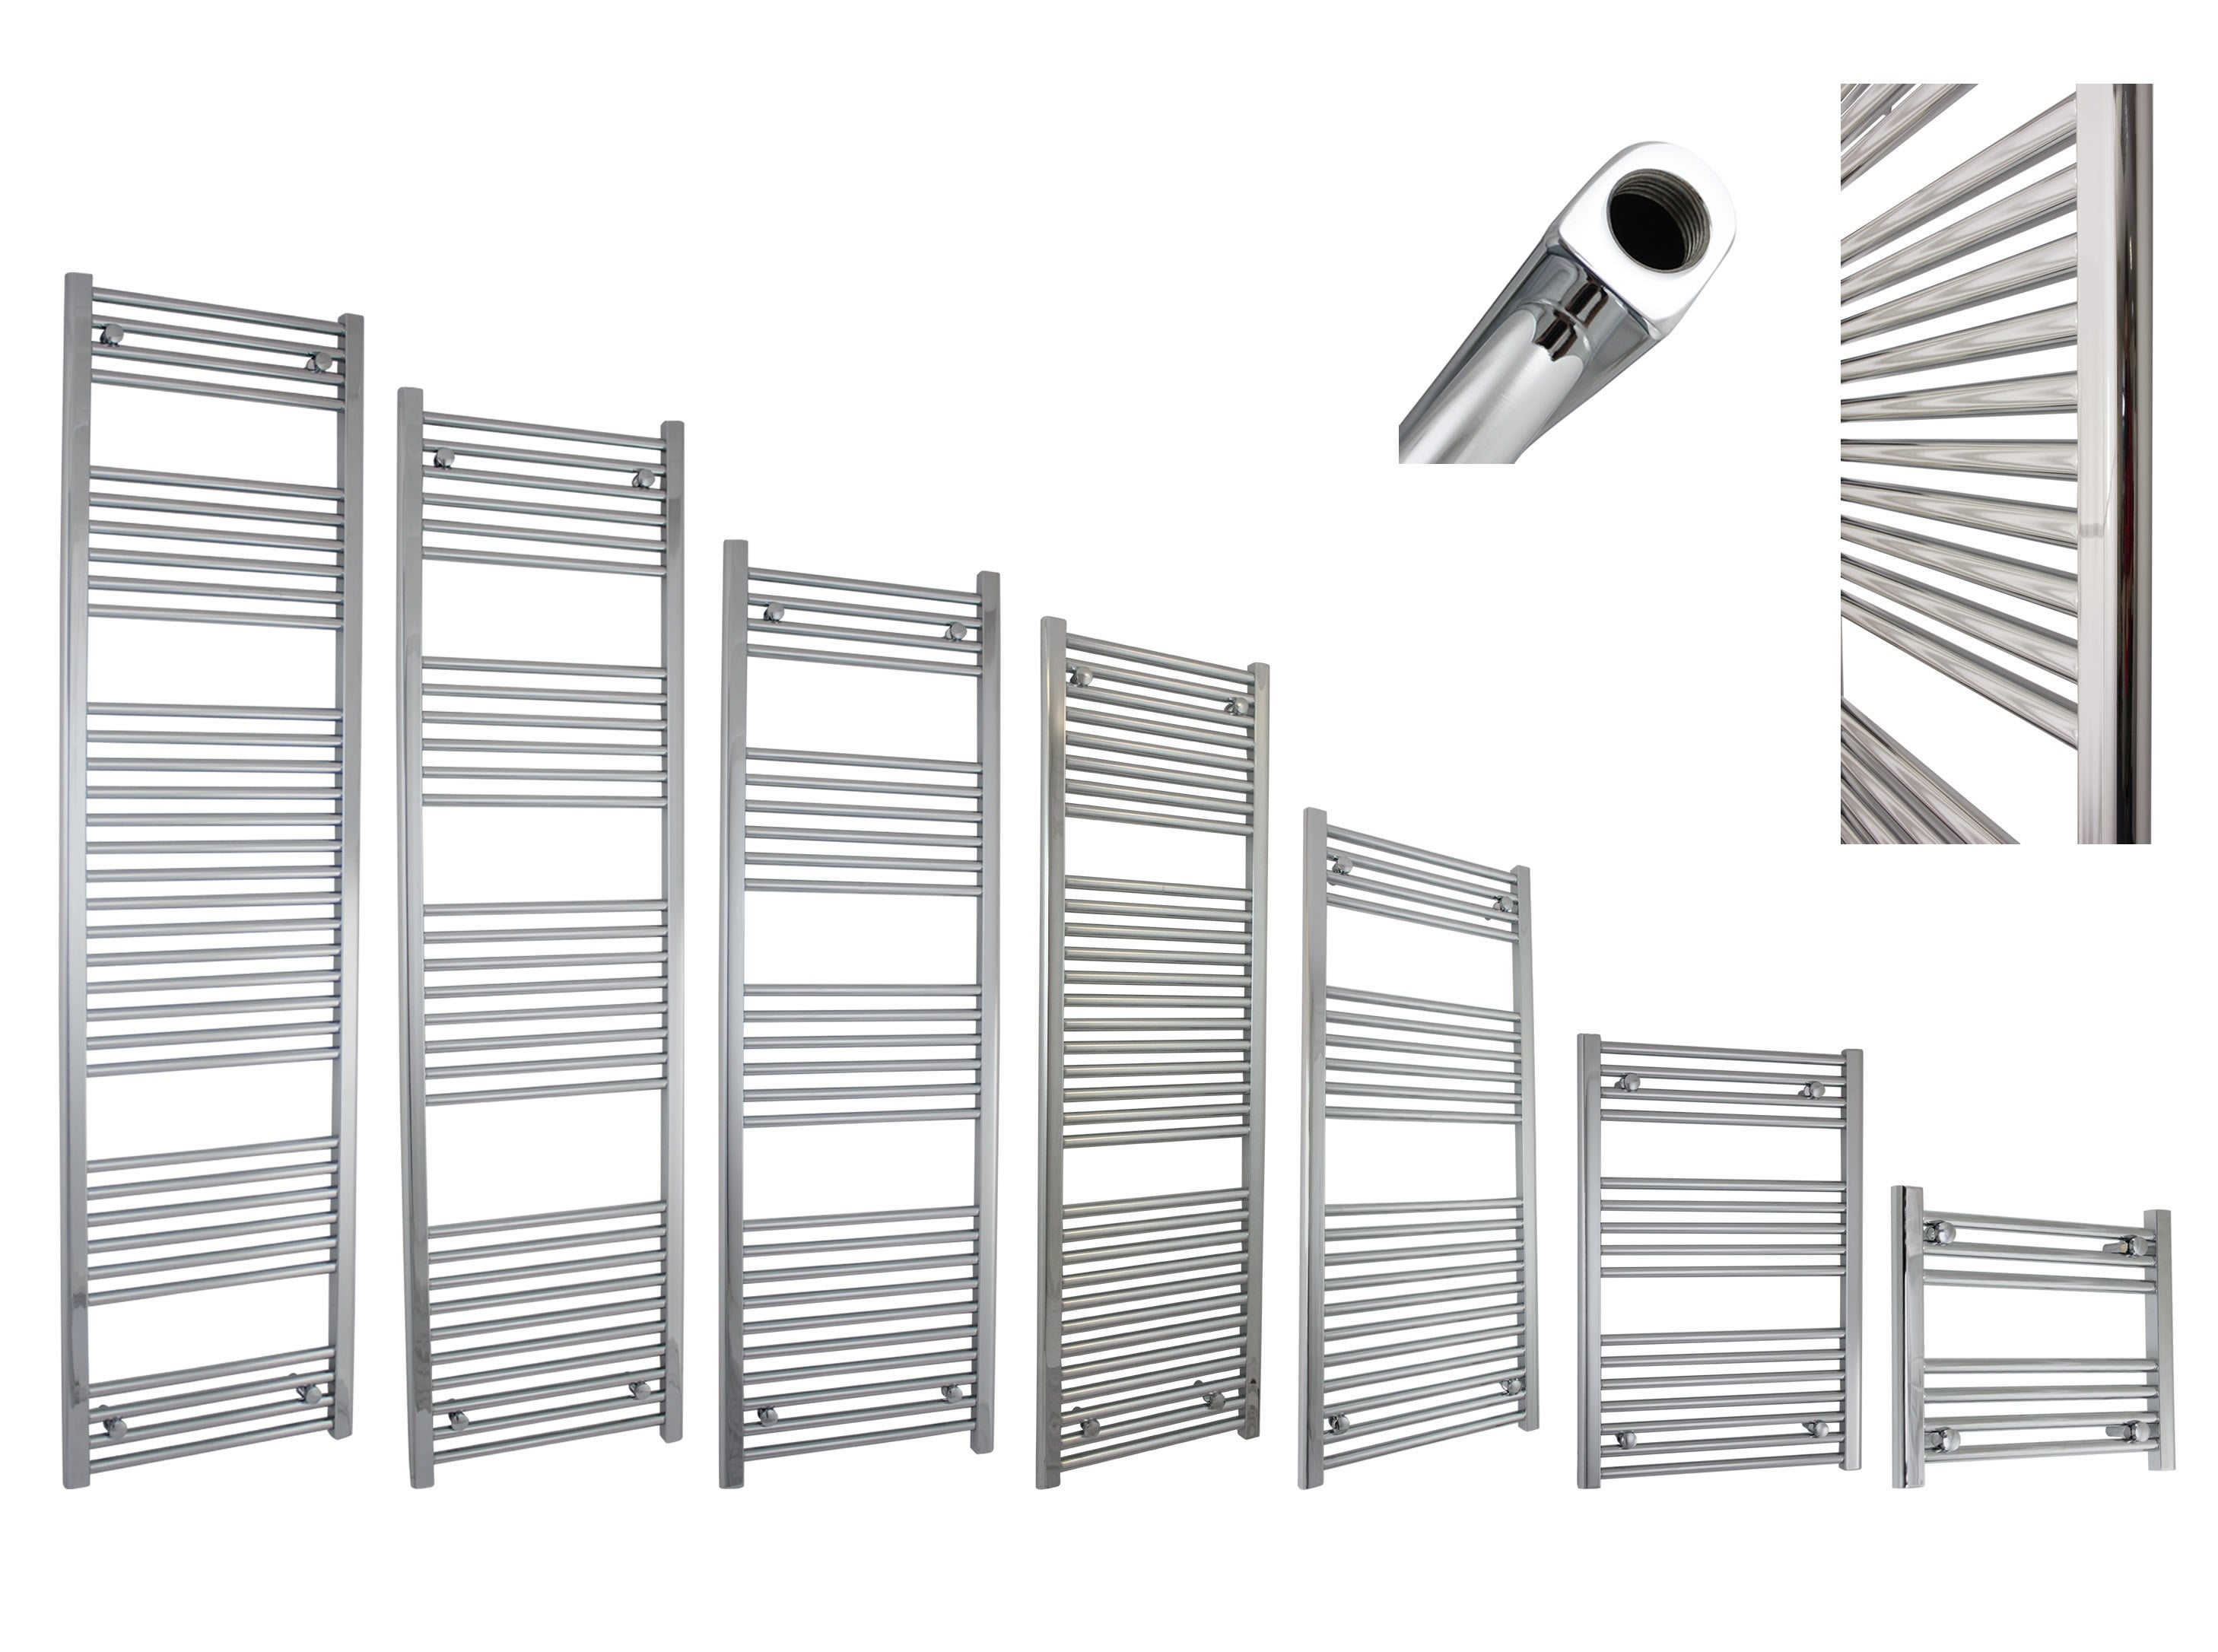 Why choose a heated Towel Rail?